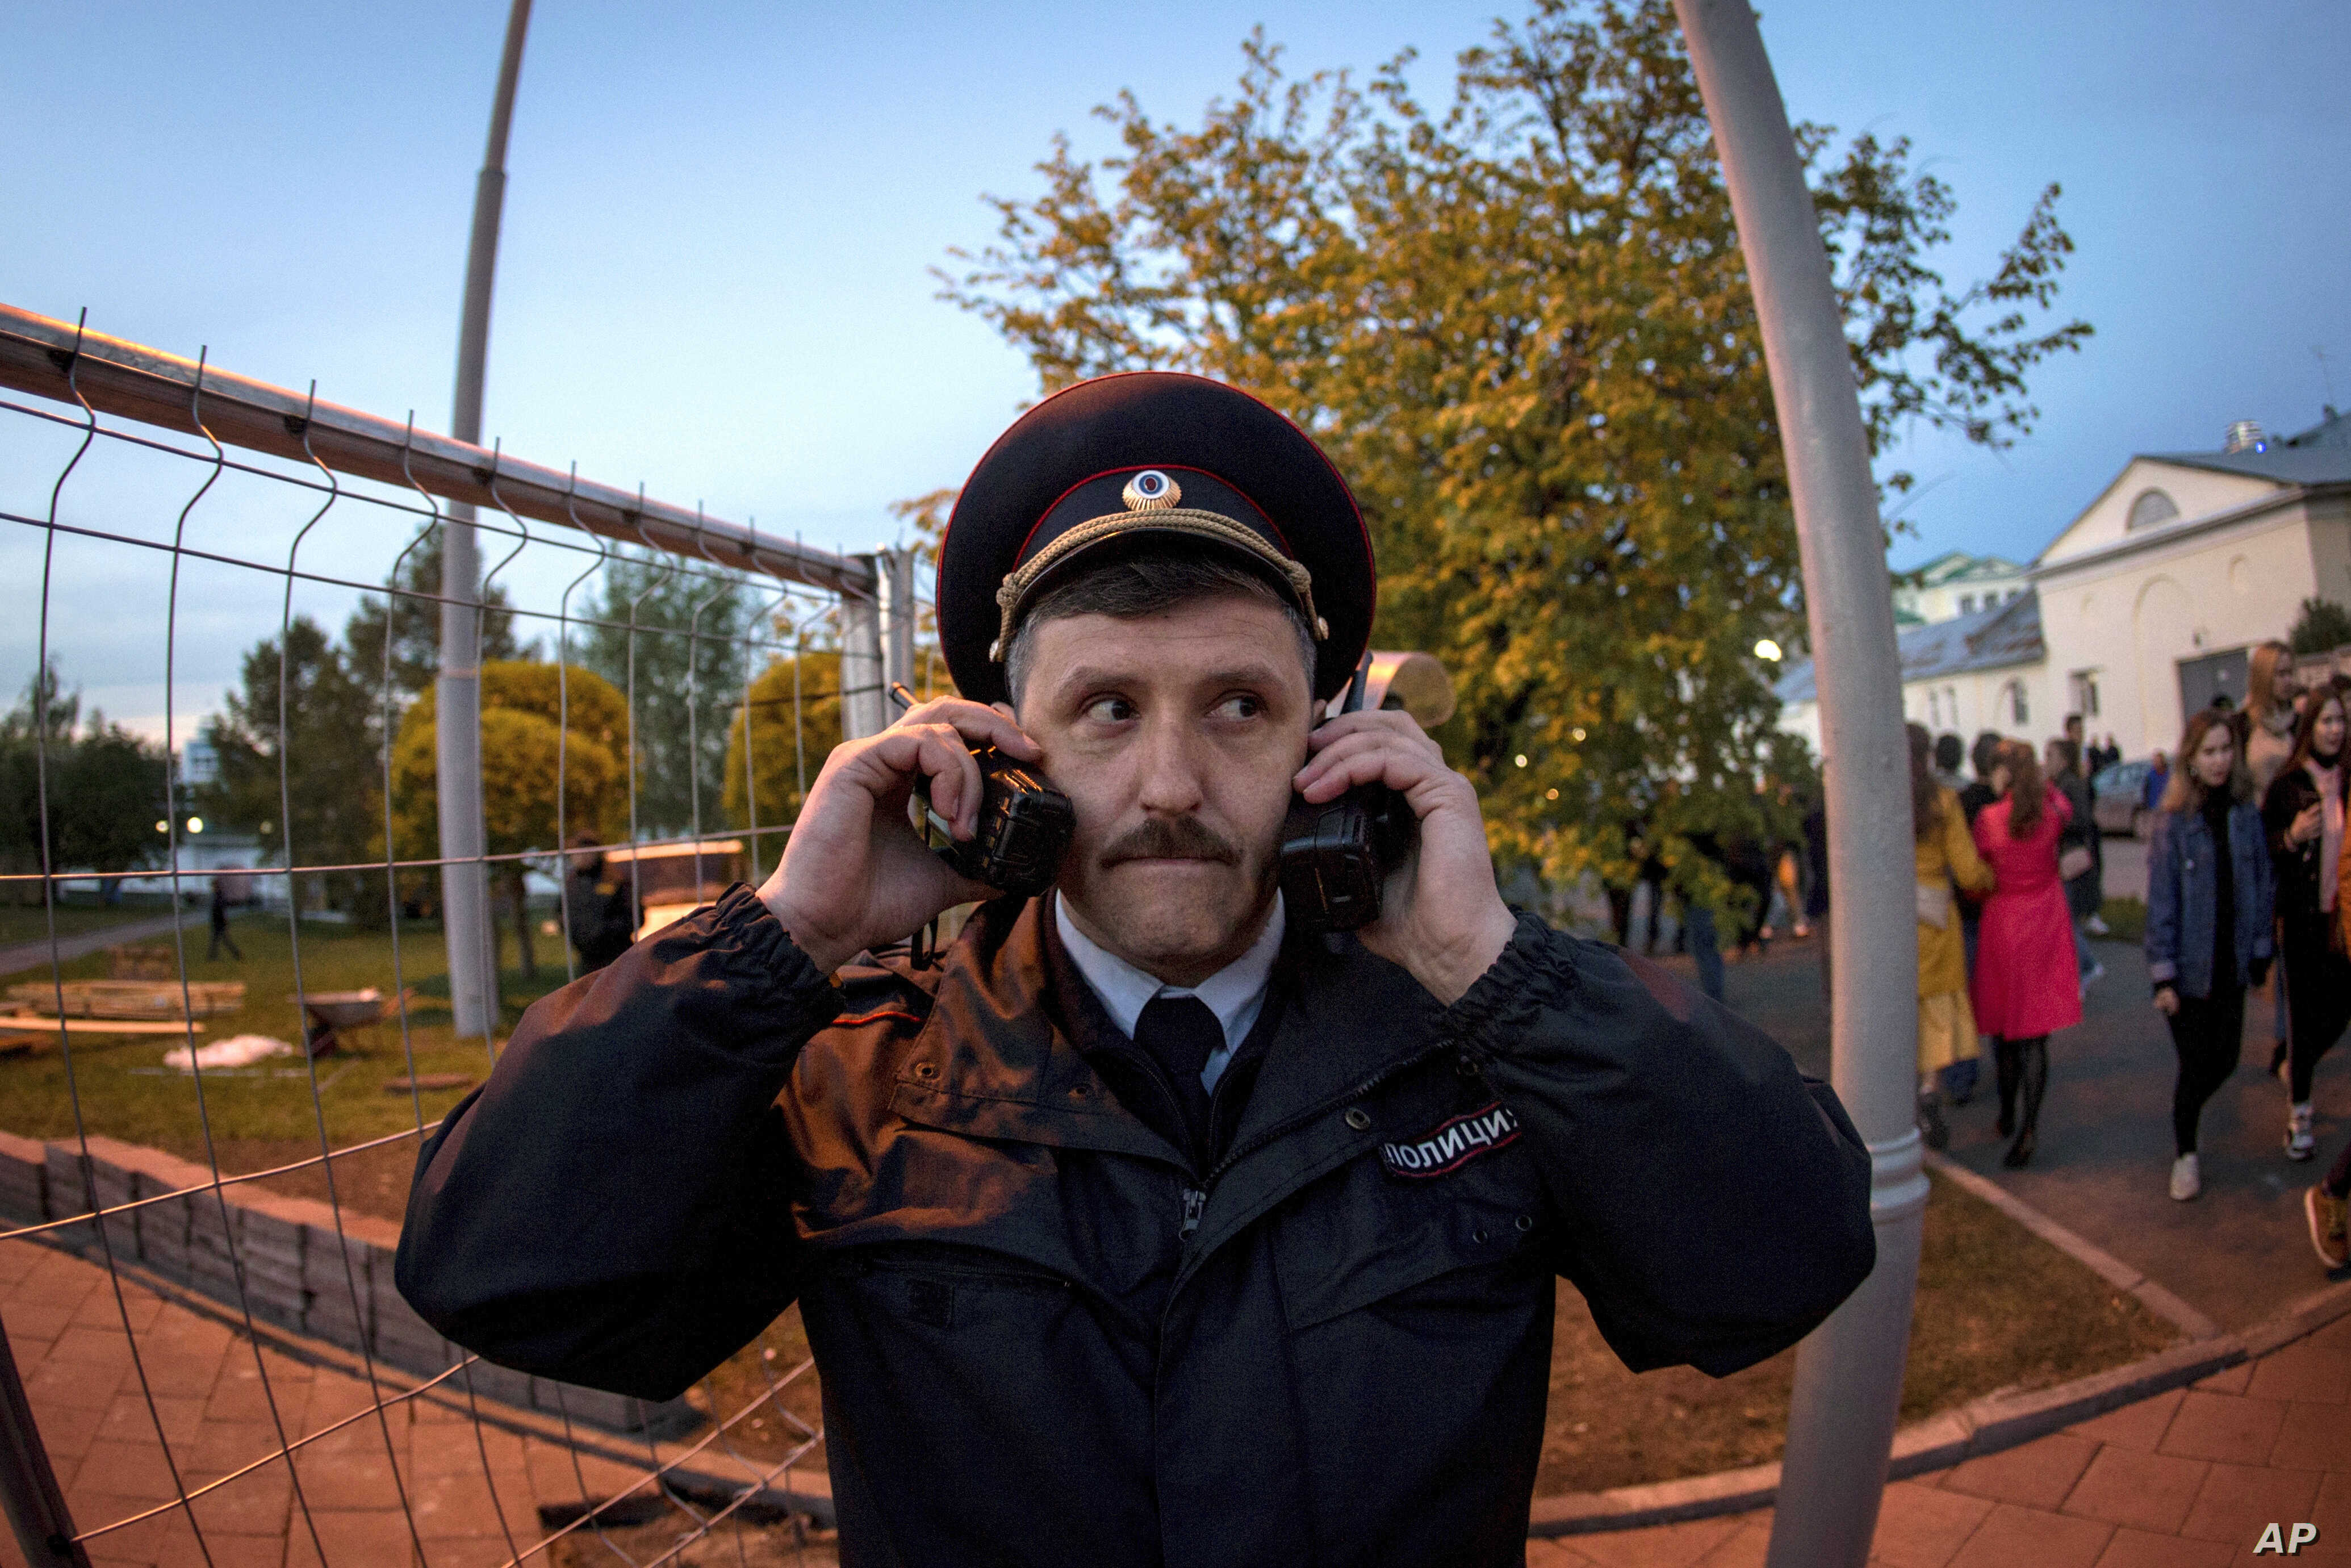 A police officer speaks on two walkie-talkies as demonstrators gather ahead of a protest against plans to construct a cathedral in a park in Yekaterinburg, Russia, May 15, 2019.